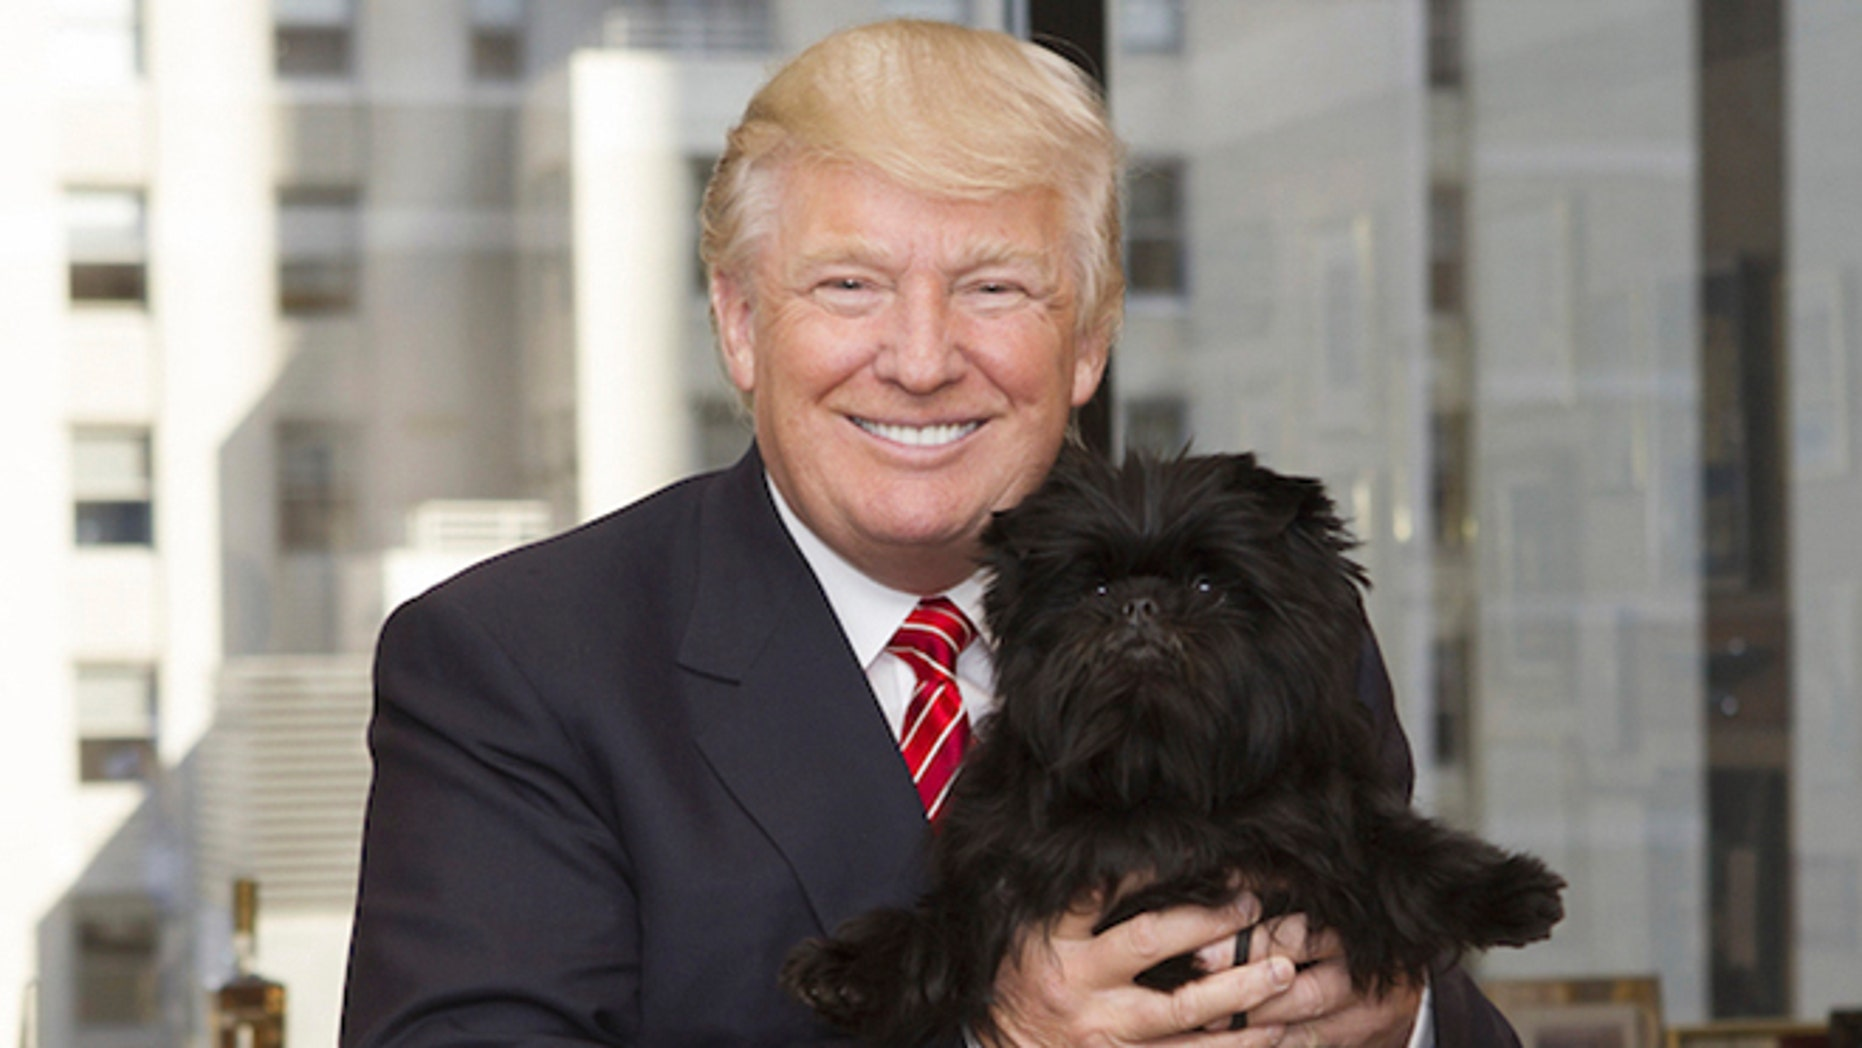 In this February 2013 photo provided by Lisa Croft-Elliott, Donald Trump holds Banana Joe, the affenpinscher who had just won best in show at the Westminster Kennel Club dog show, at Trump Tower, in New York.